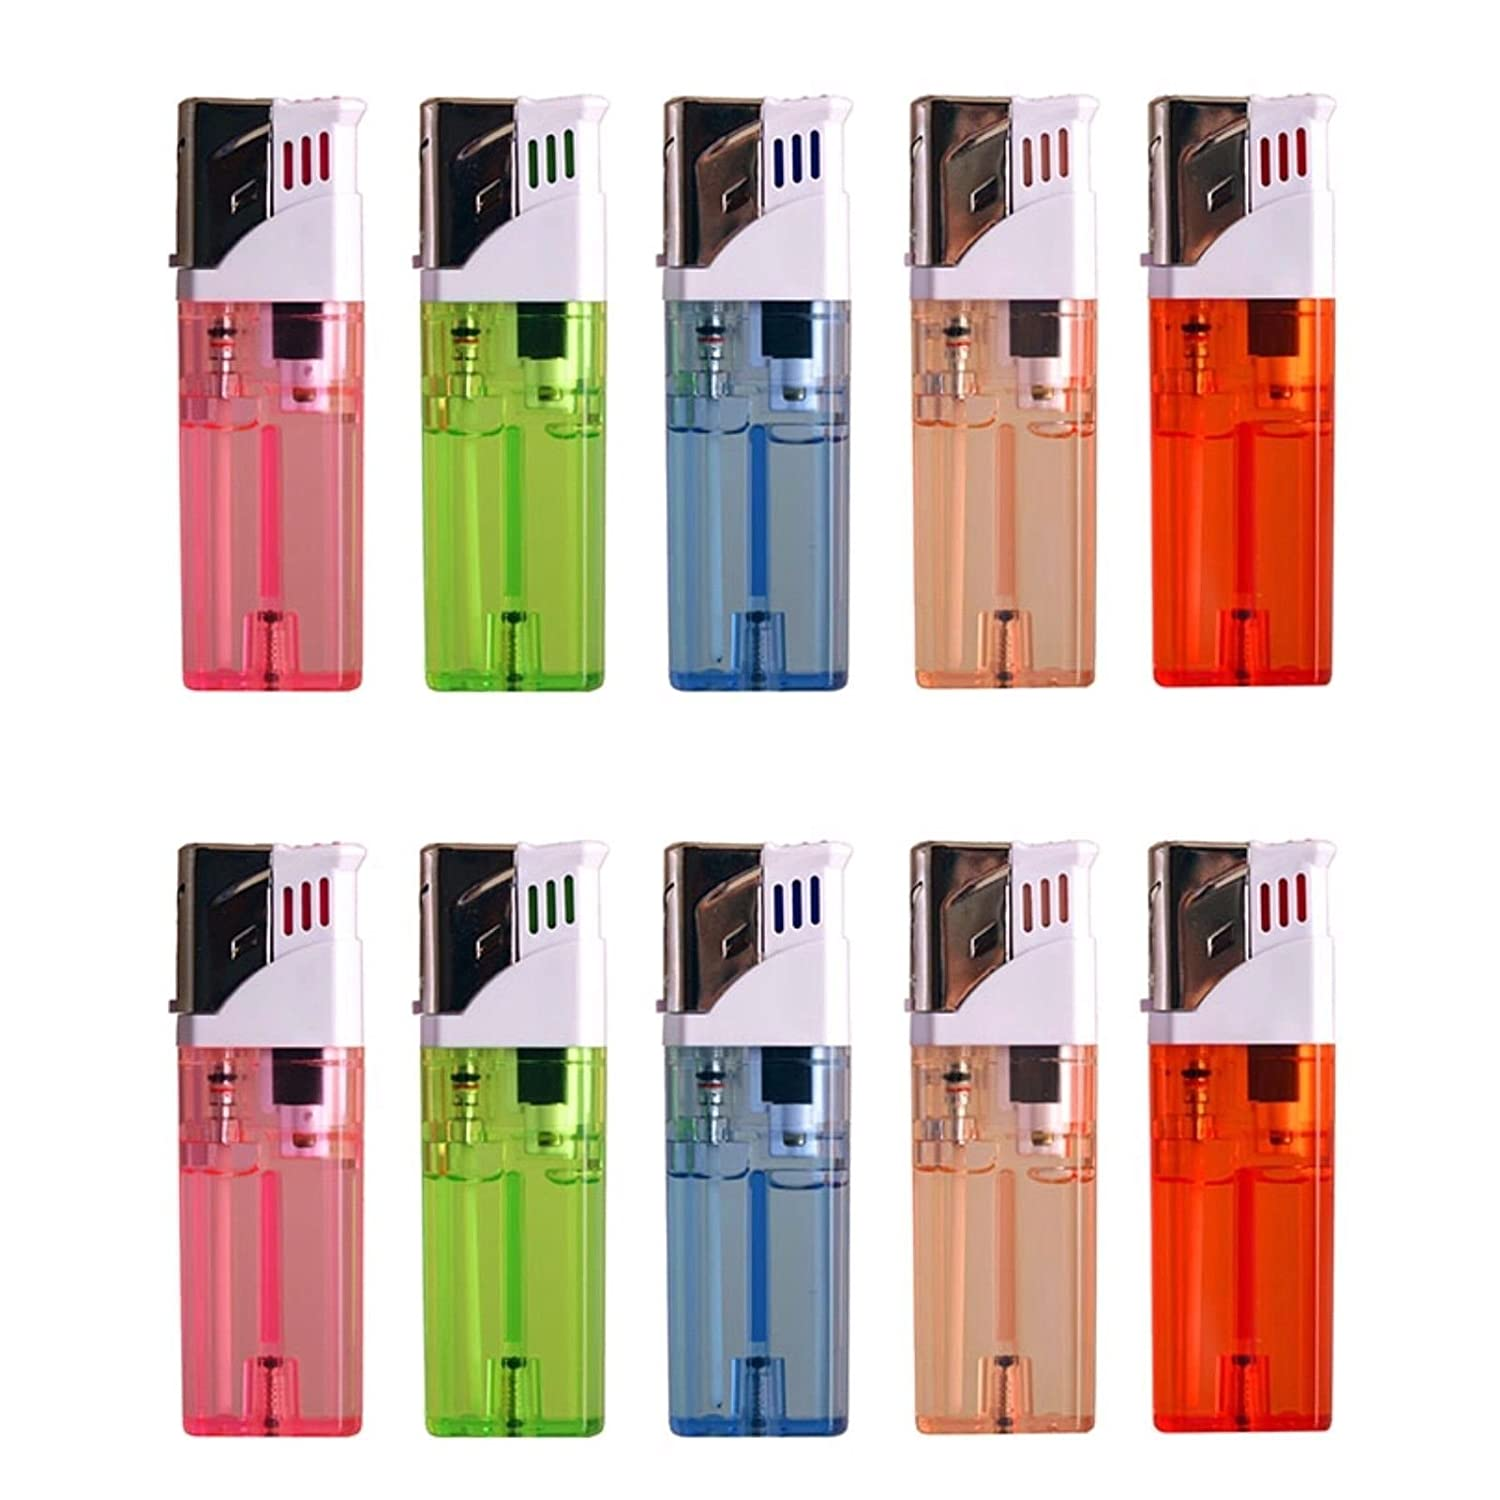 Amazon.com: 10 PACK Windproof Butane Gas Cigar Cigarette Lighter ... for Torch Lighter Refill  55dqh